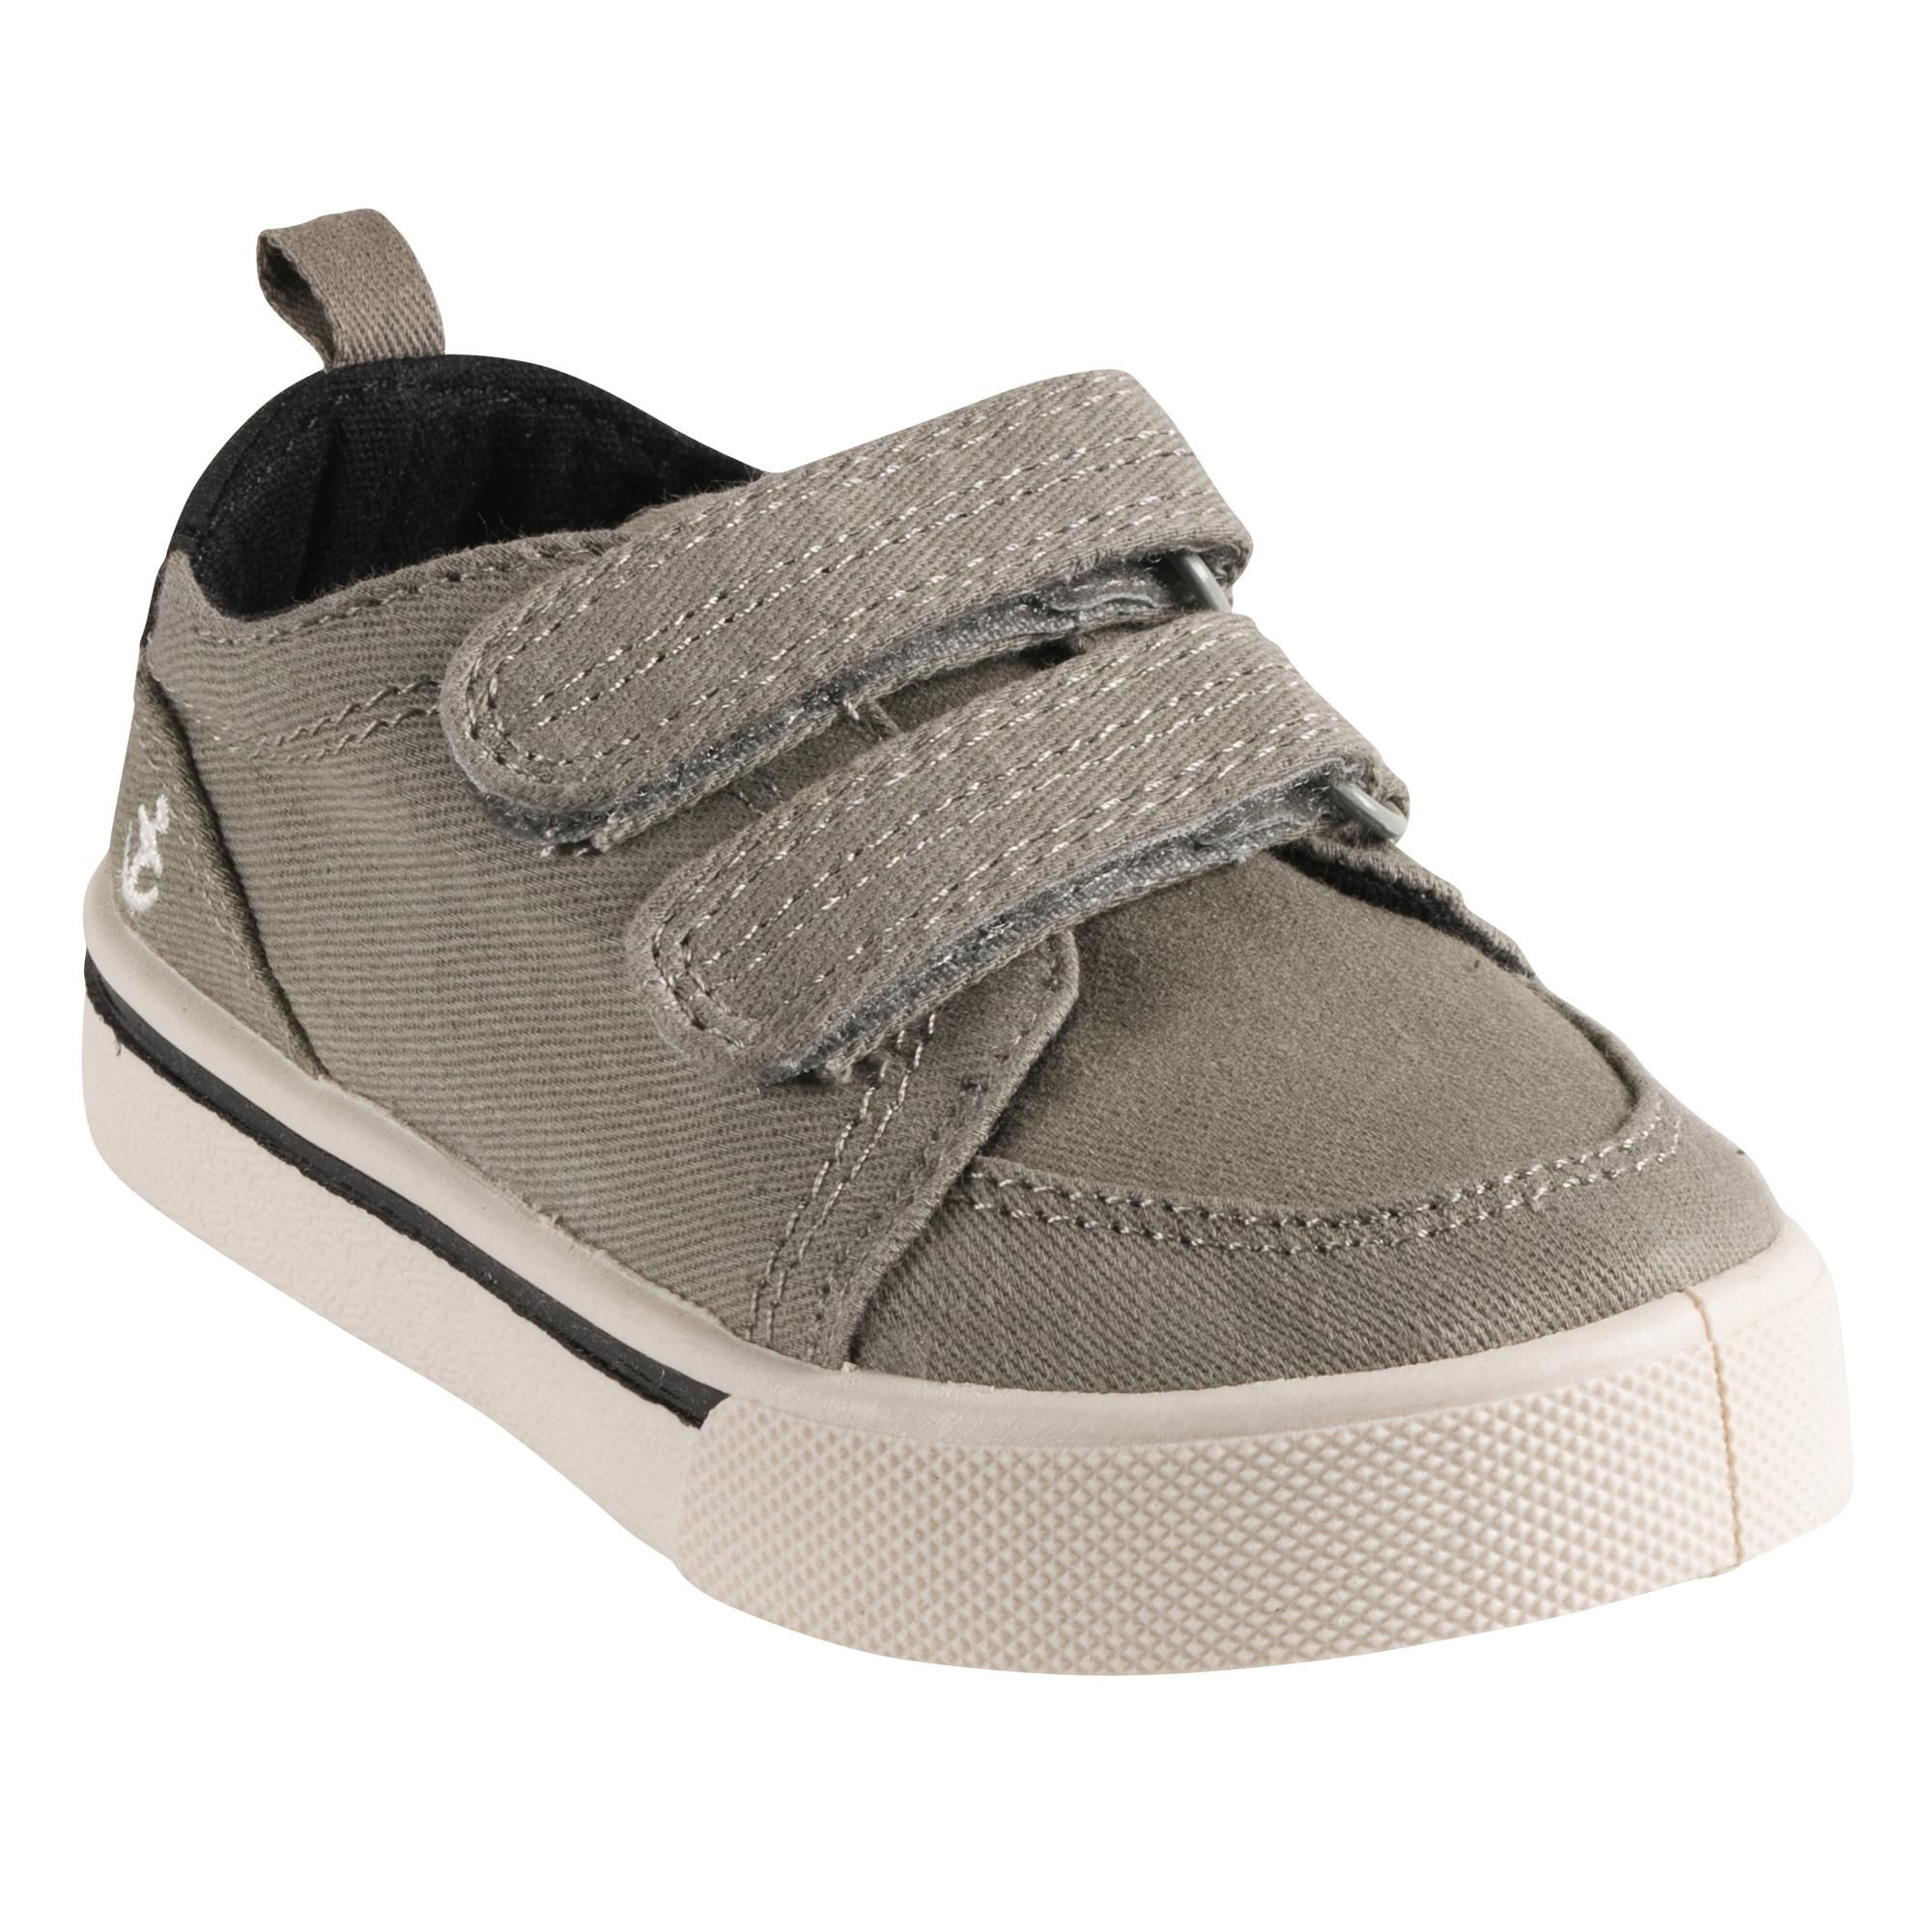 boys Gray Canvas Shoes Toddler Boy Shoes $20